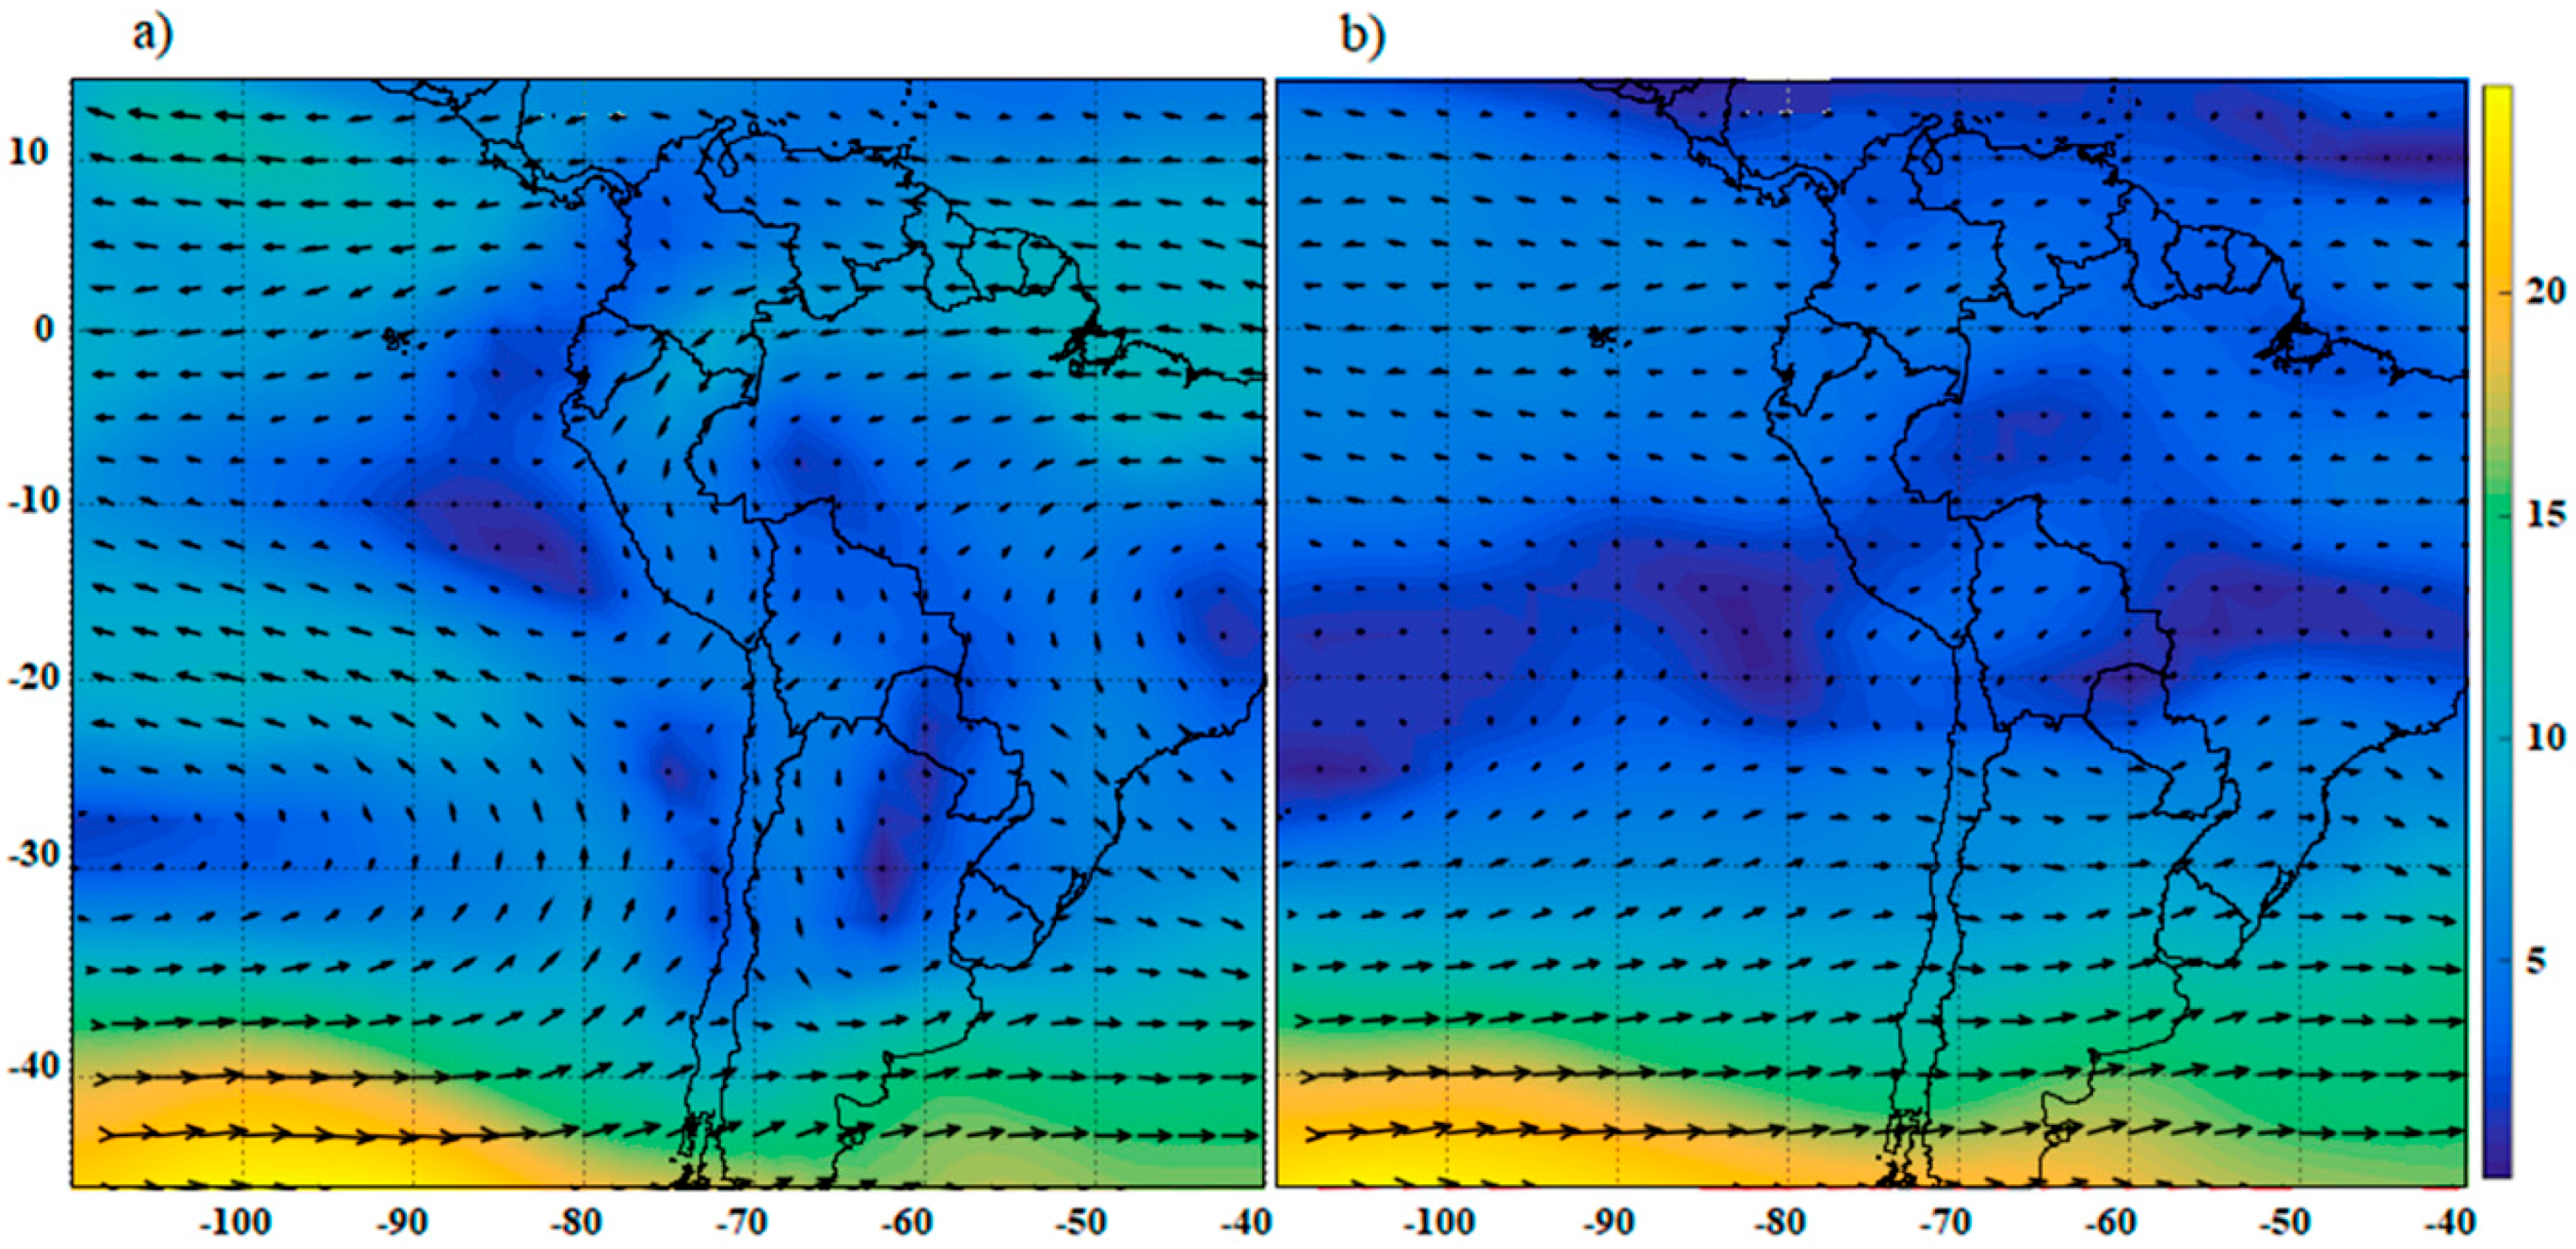 Atmosphere Free FullText Extreme Rainfall Forecast With The WRF - Open invoice peru